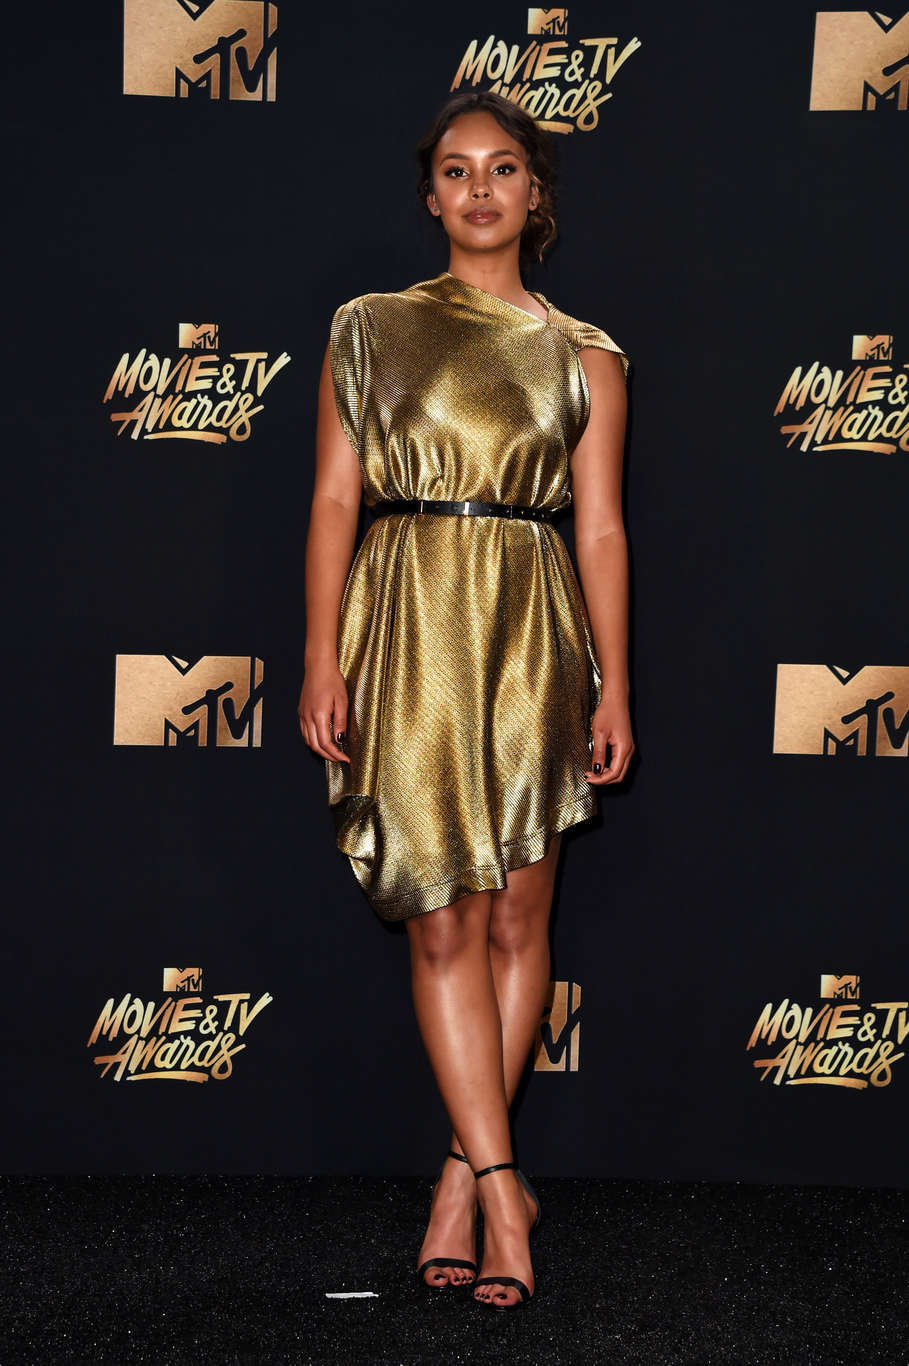 LOS ANGELES, CA - MAY 07: Actor Alisha Boe poses in the press room during the 2017 MTV Movie And TV Awards at The Shrine Auditorium on May 7, 2017 in Los Angeles, California. (Photo by Alberto E. Rodriguez/Getty Images)